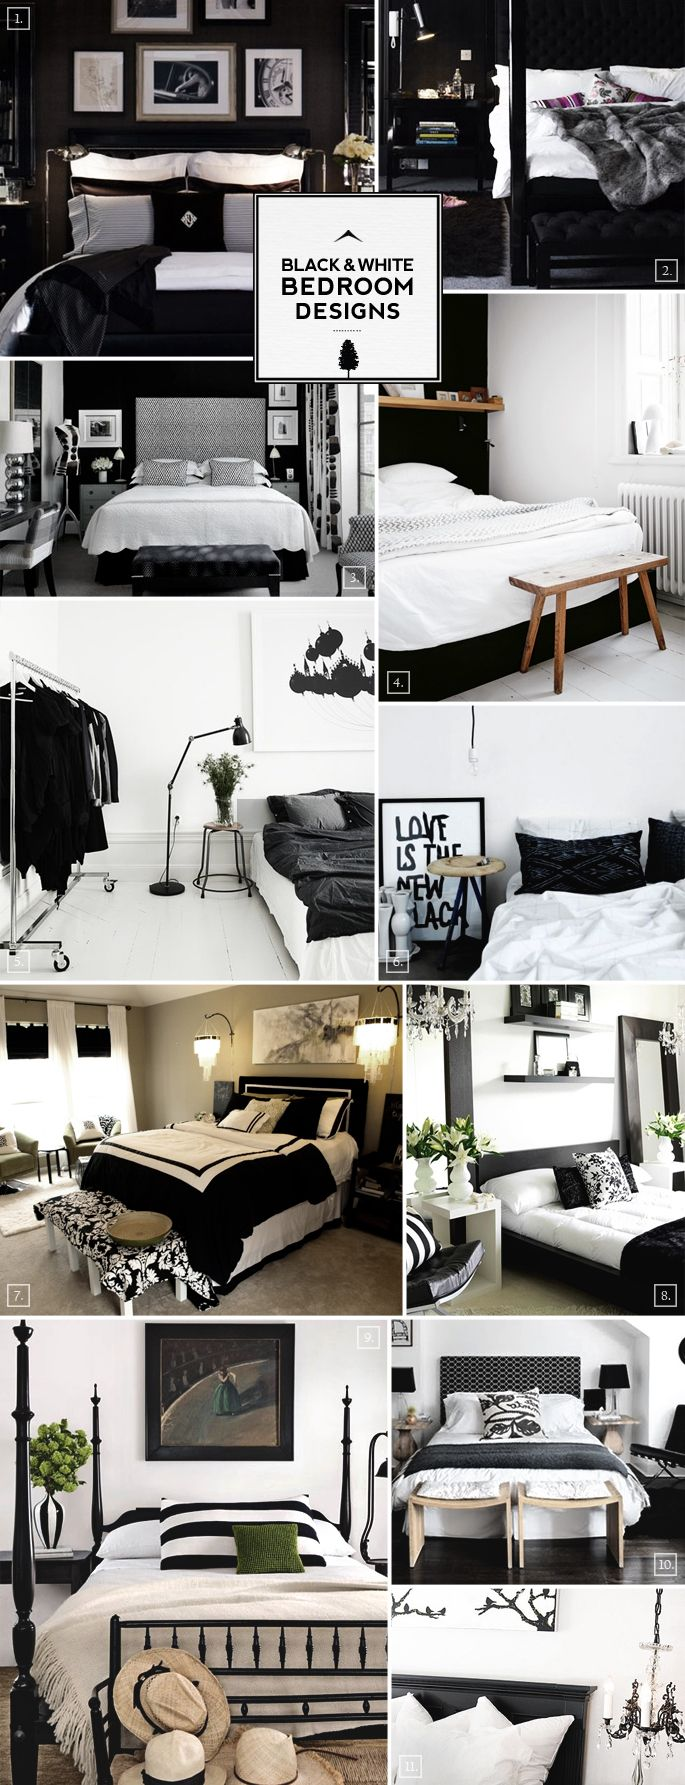 Black and White Bedroom Designs and Decor Ideas | Home ...